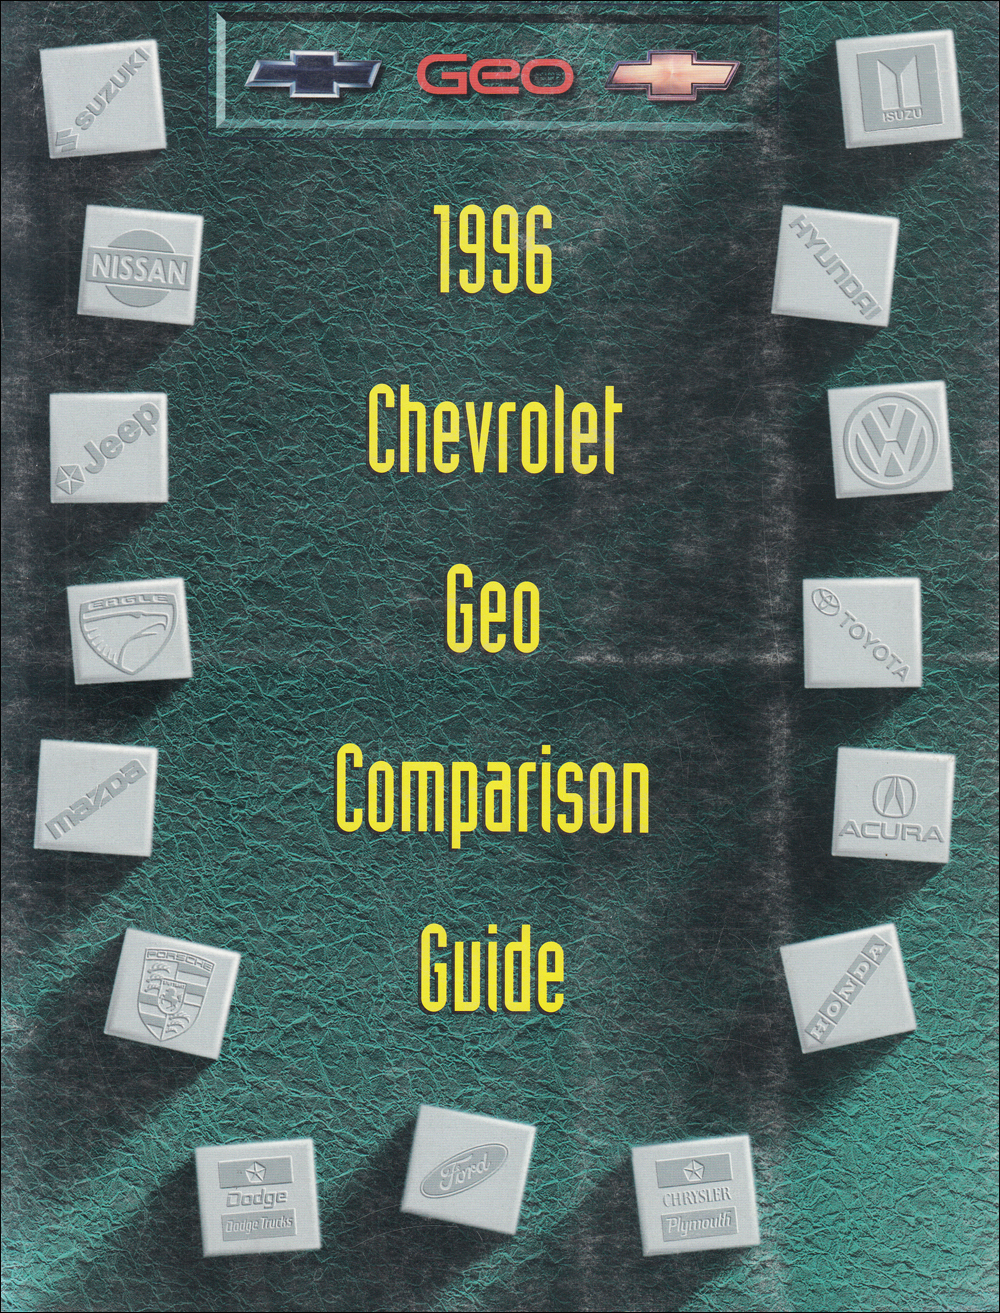 1996 Chevrolet Competitive Comparison Dealer Album Original